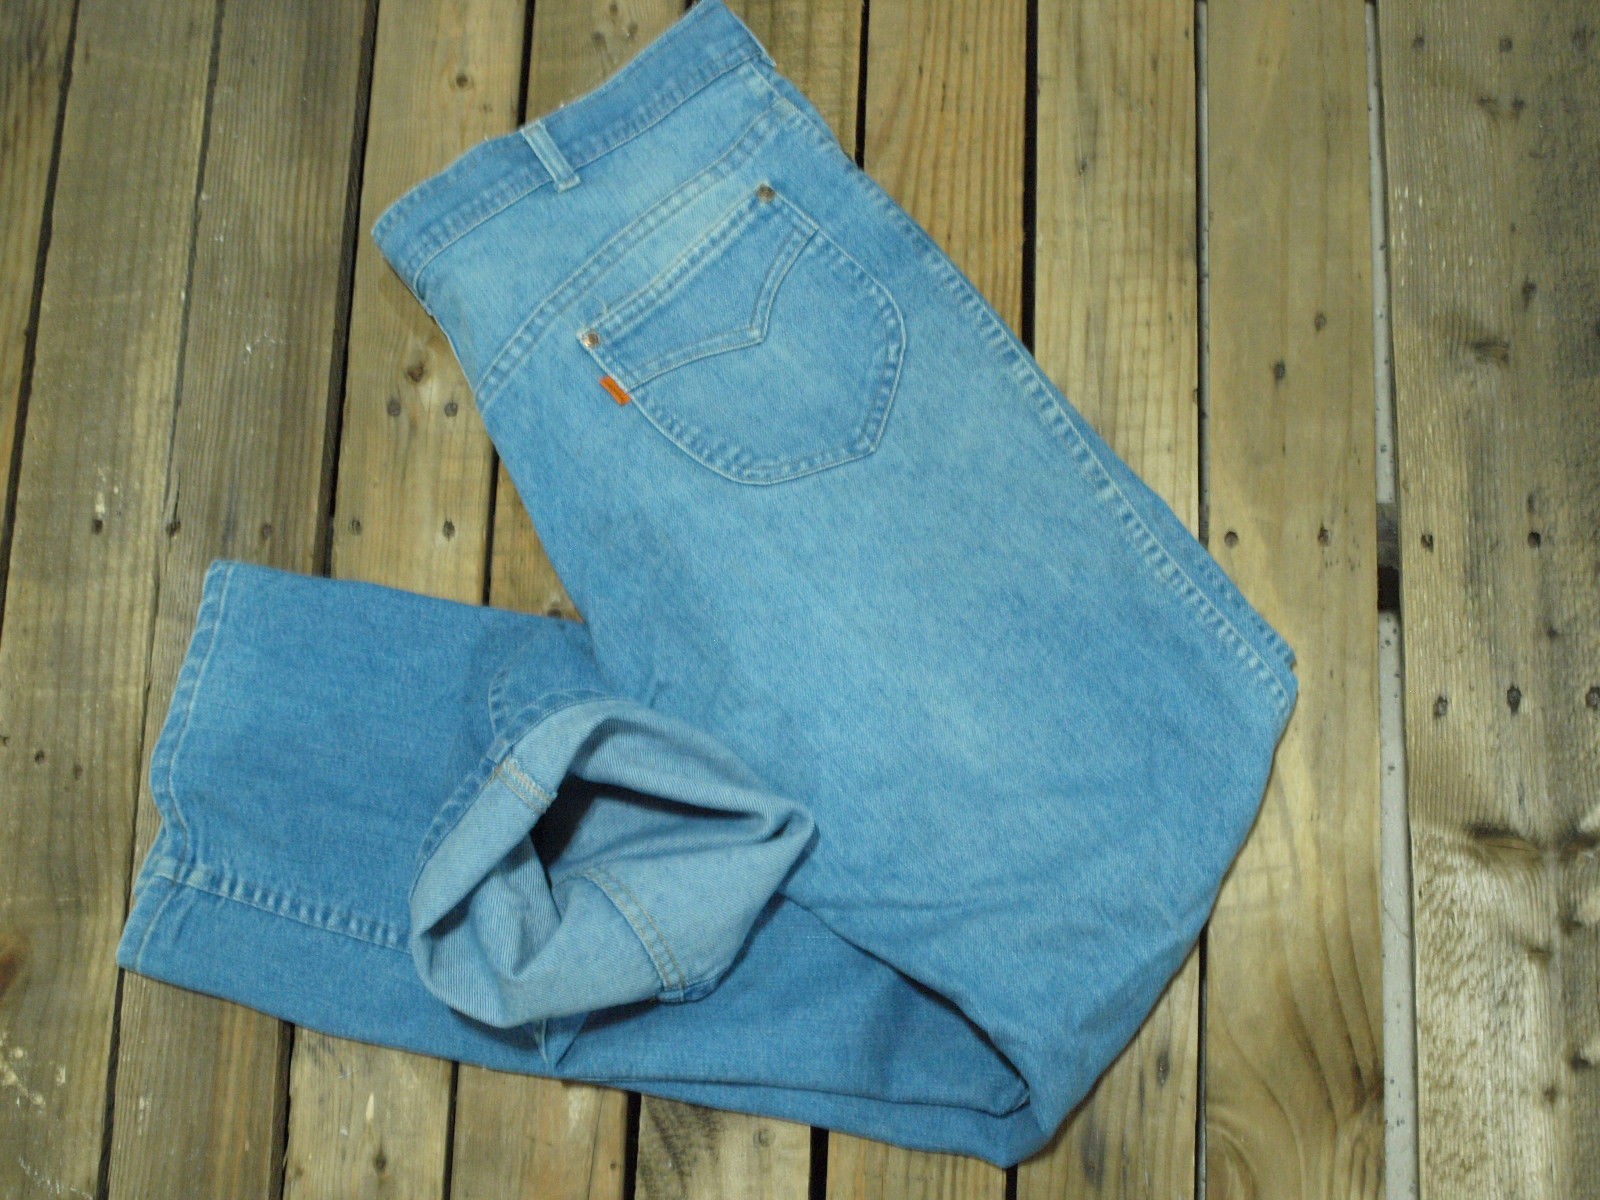 Primary image for VINTAGE LEVIS Jeans talon zip Orange Tab LEVIS for Men True Vintage